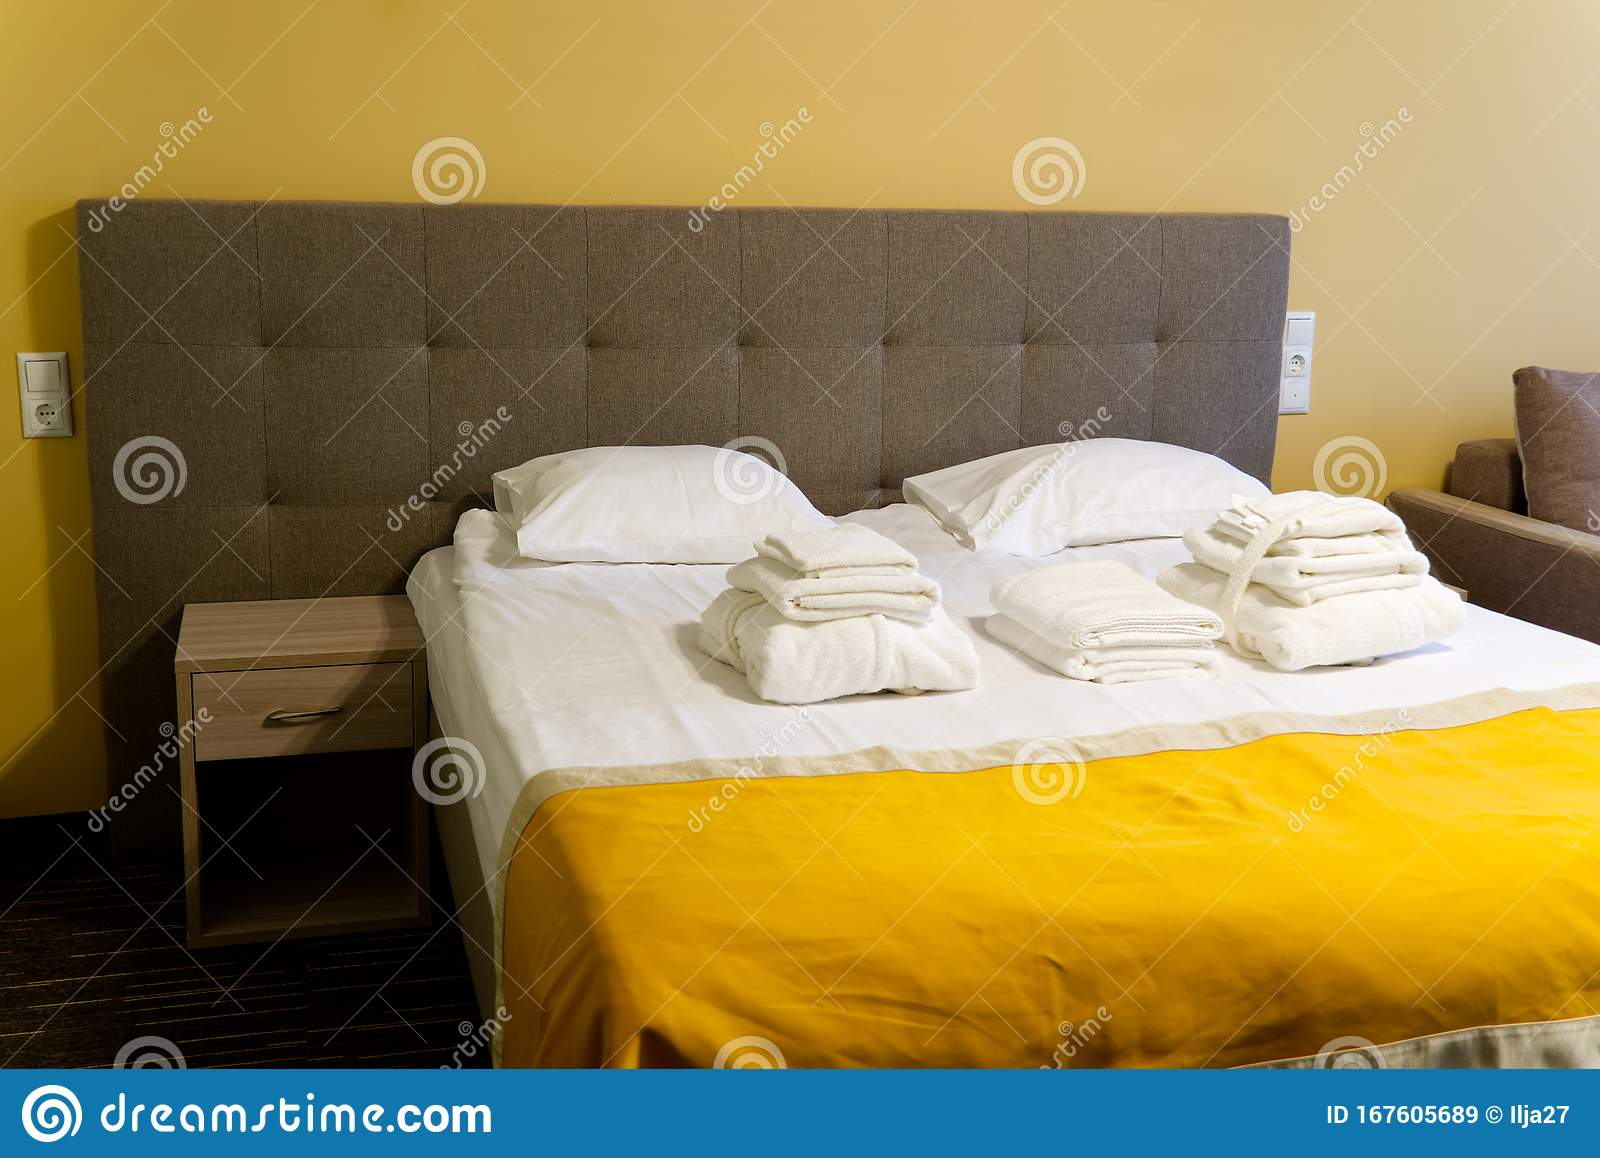 Lean Bed In The Hotel Room Of The Spa Center Ray Soft Bed And Orange Bedspread Stock Image Image Of Home Bedroom 167605689